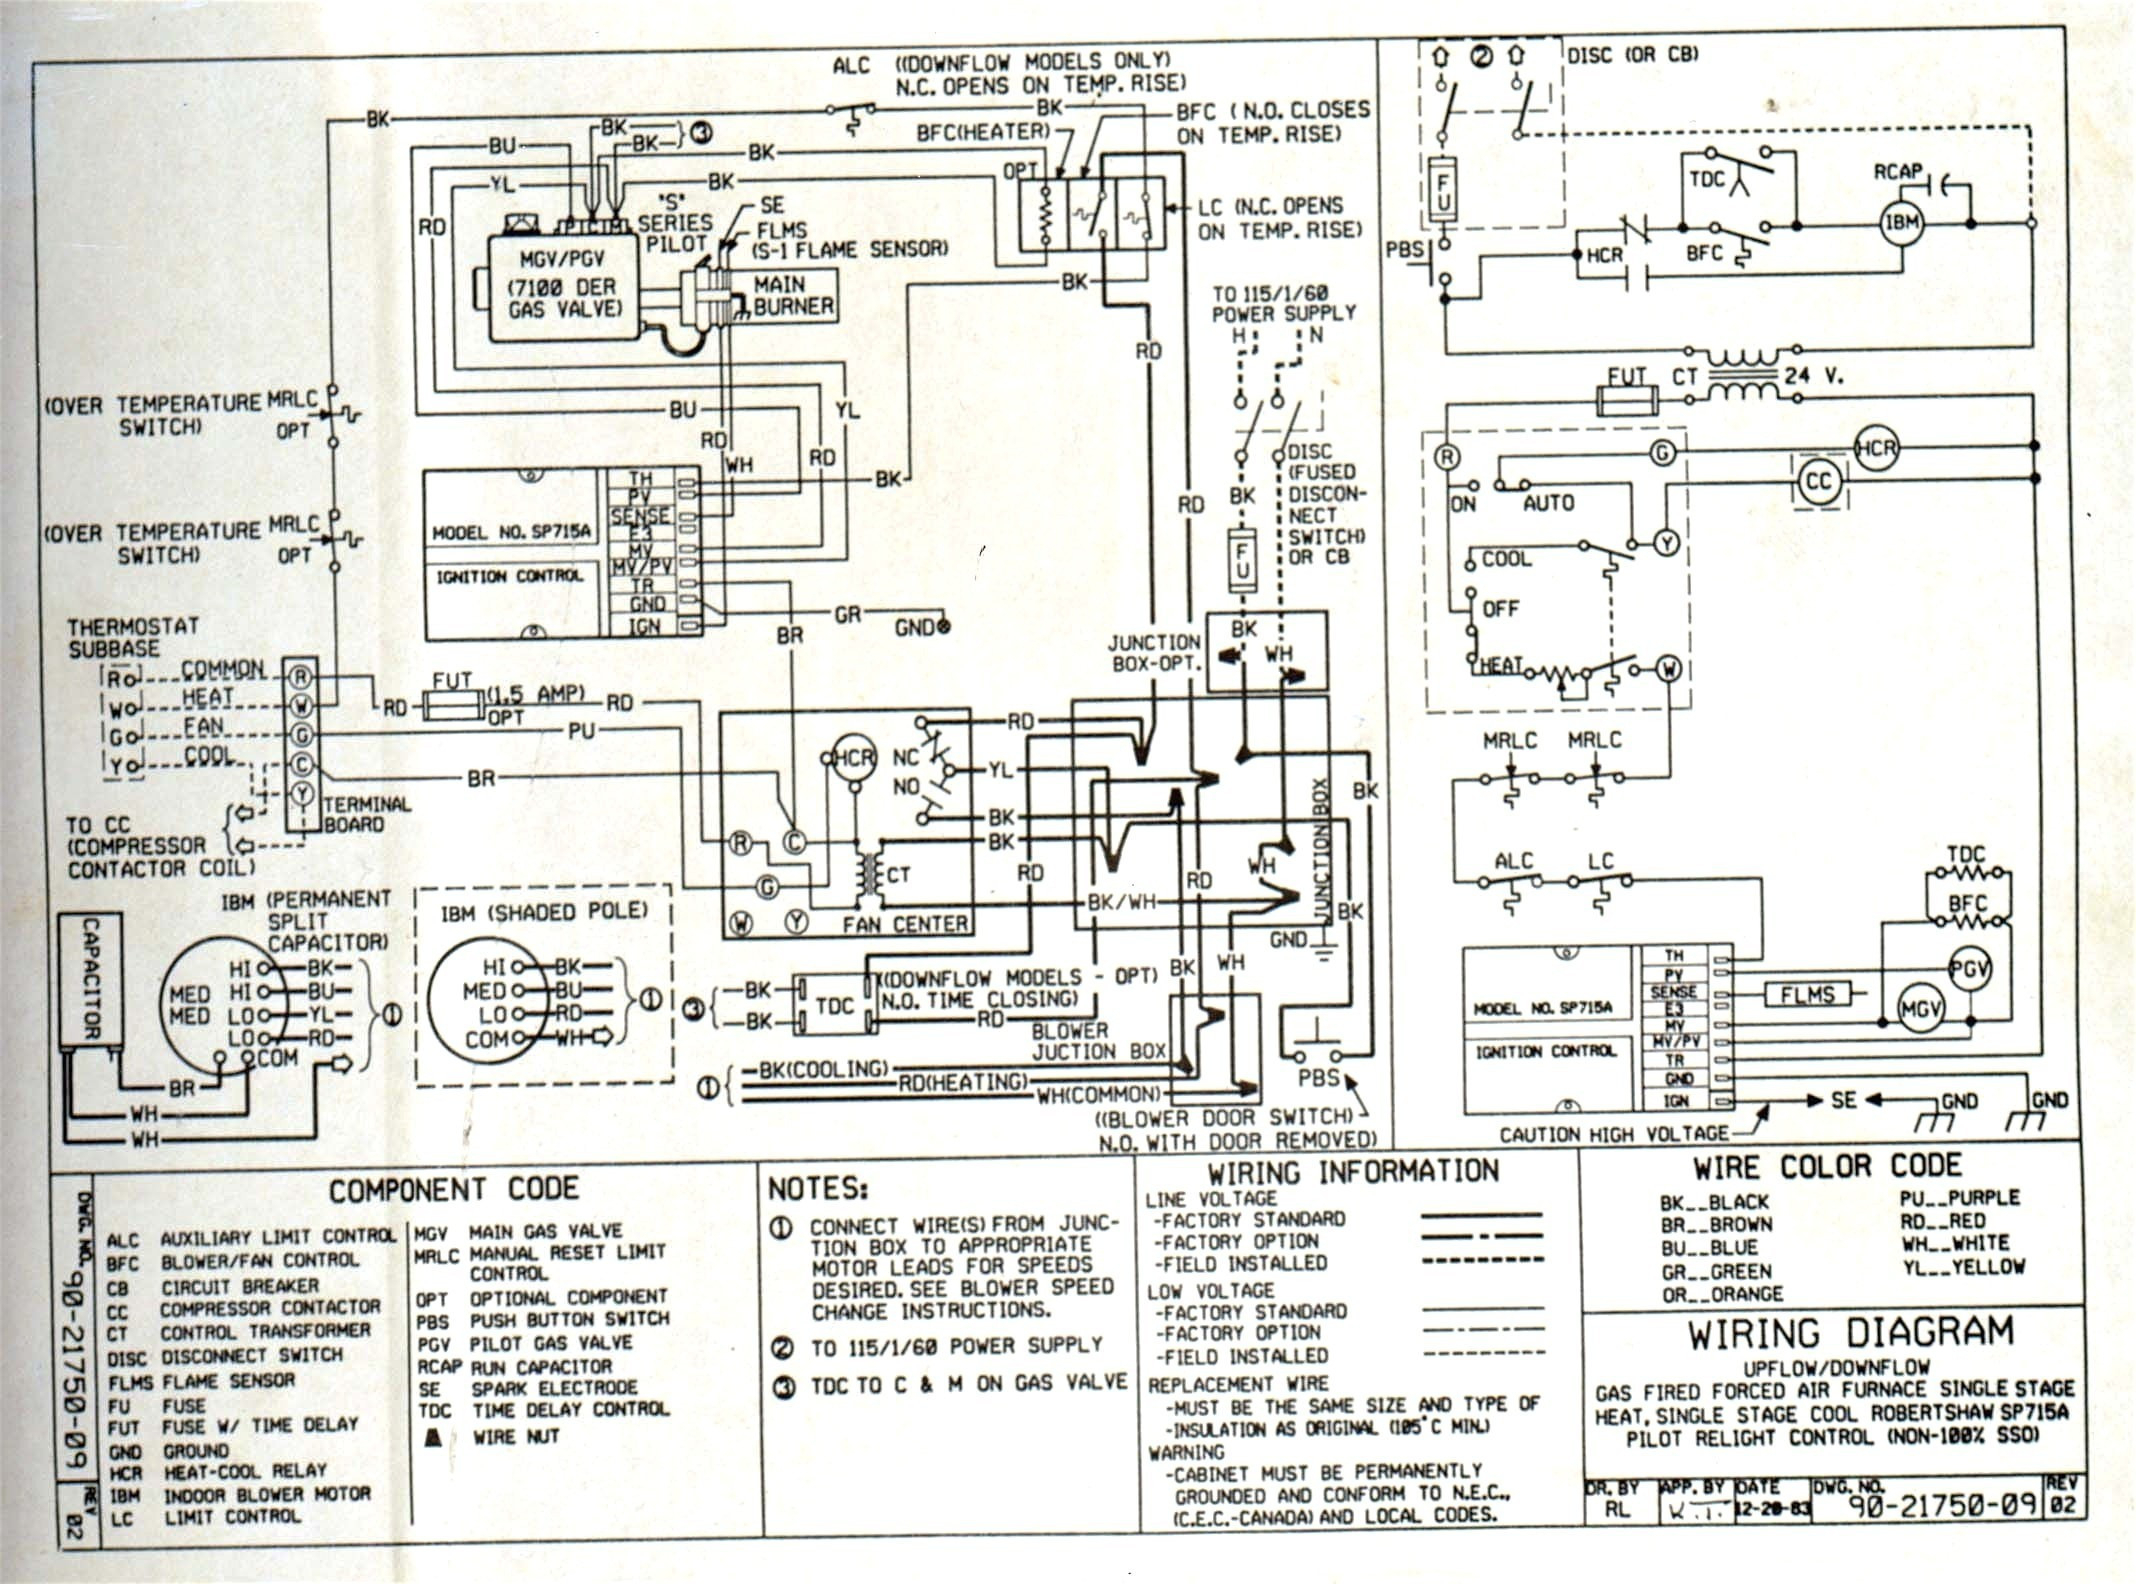 carrier air handler wiring diagram Collection-carrier ac wiring diagram Collection Wiring Diagram Ac Split Sanyo Fresh Wiring Diagram Indoor Ac 6-h